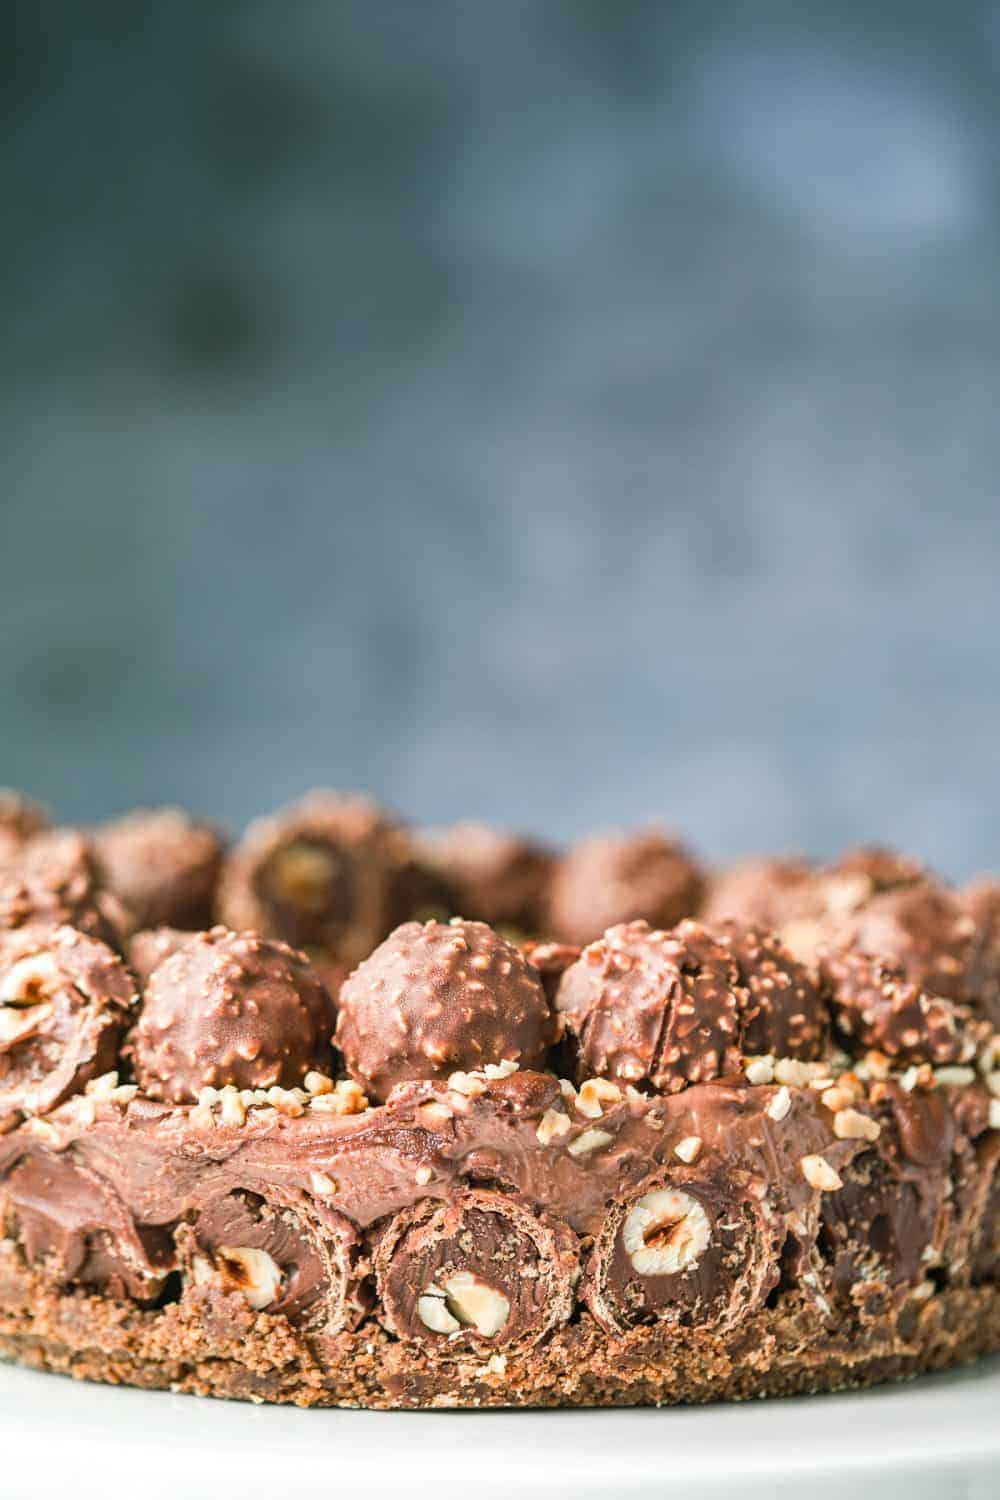 A no-bake cheesecake with a layer of Ferrero Rocher.